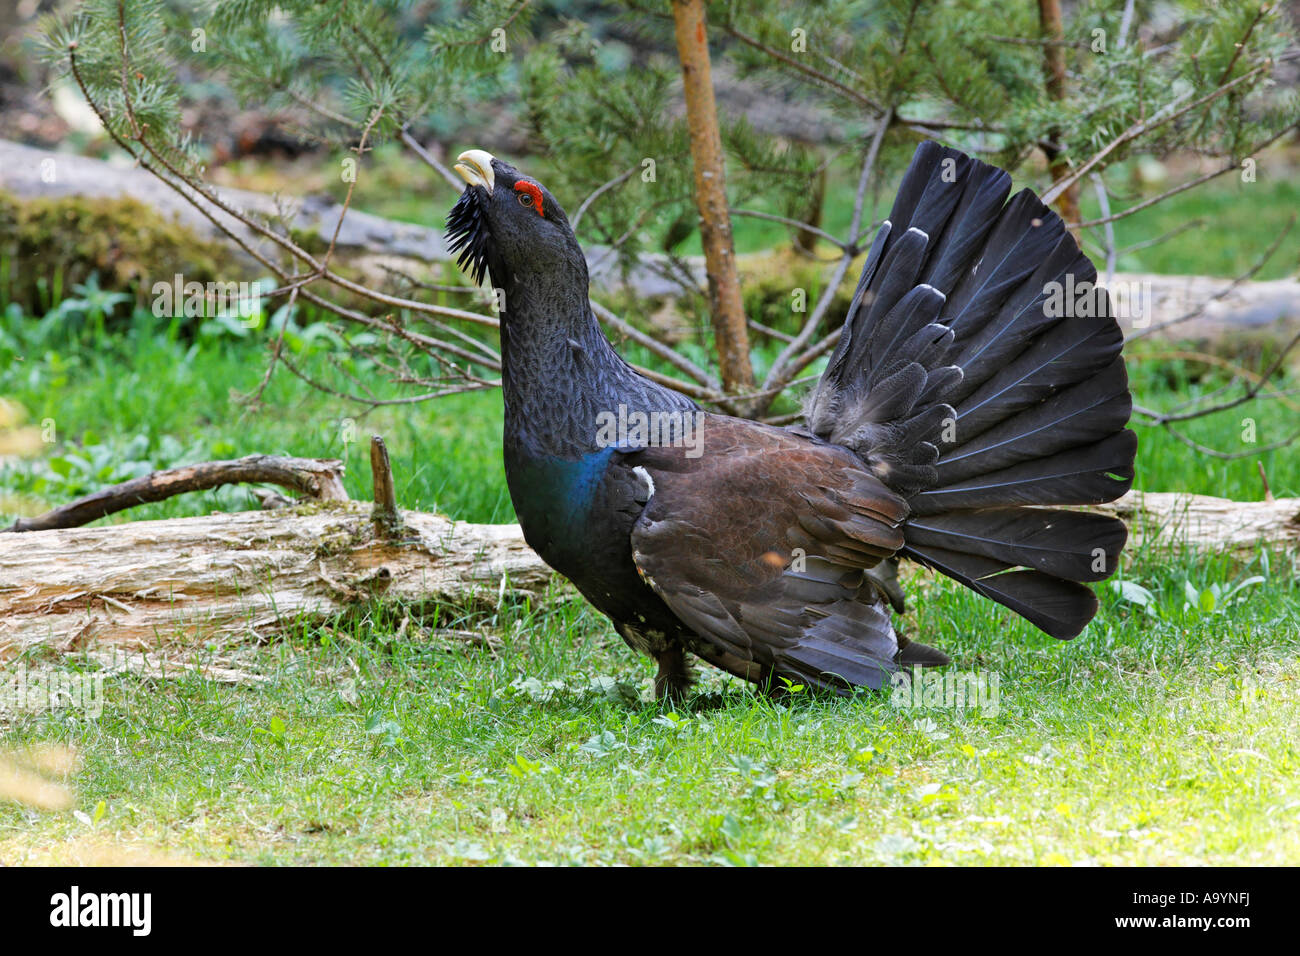 Capercaillie, wood grouse (Tetrao urogallus), Bavaria, Germany - Stock Image